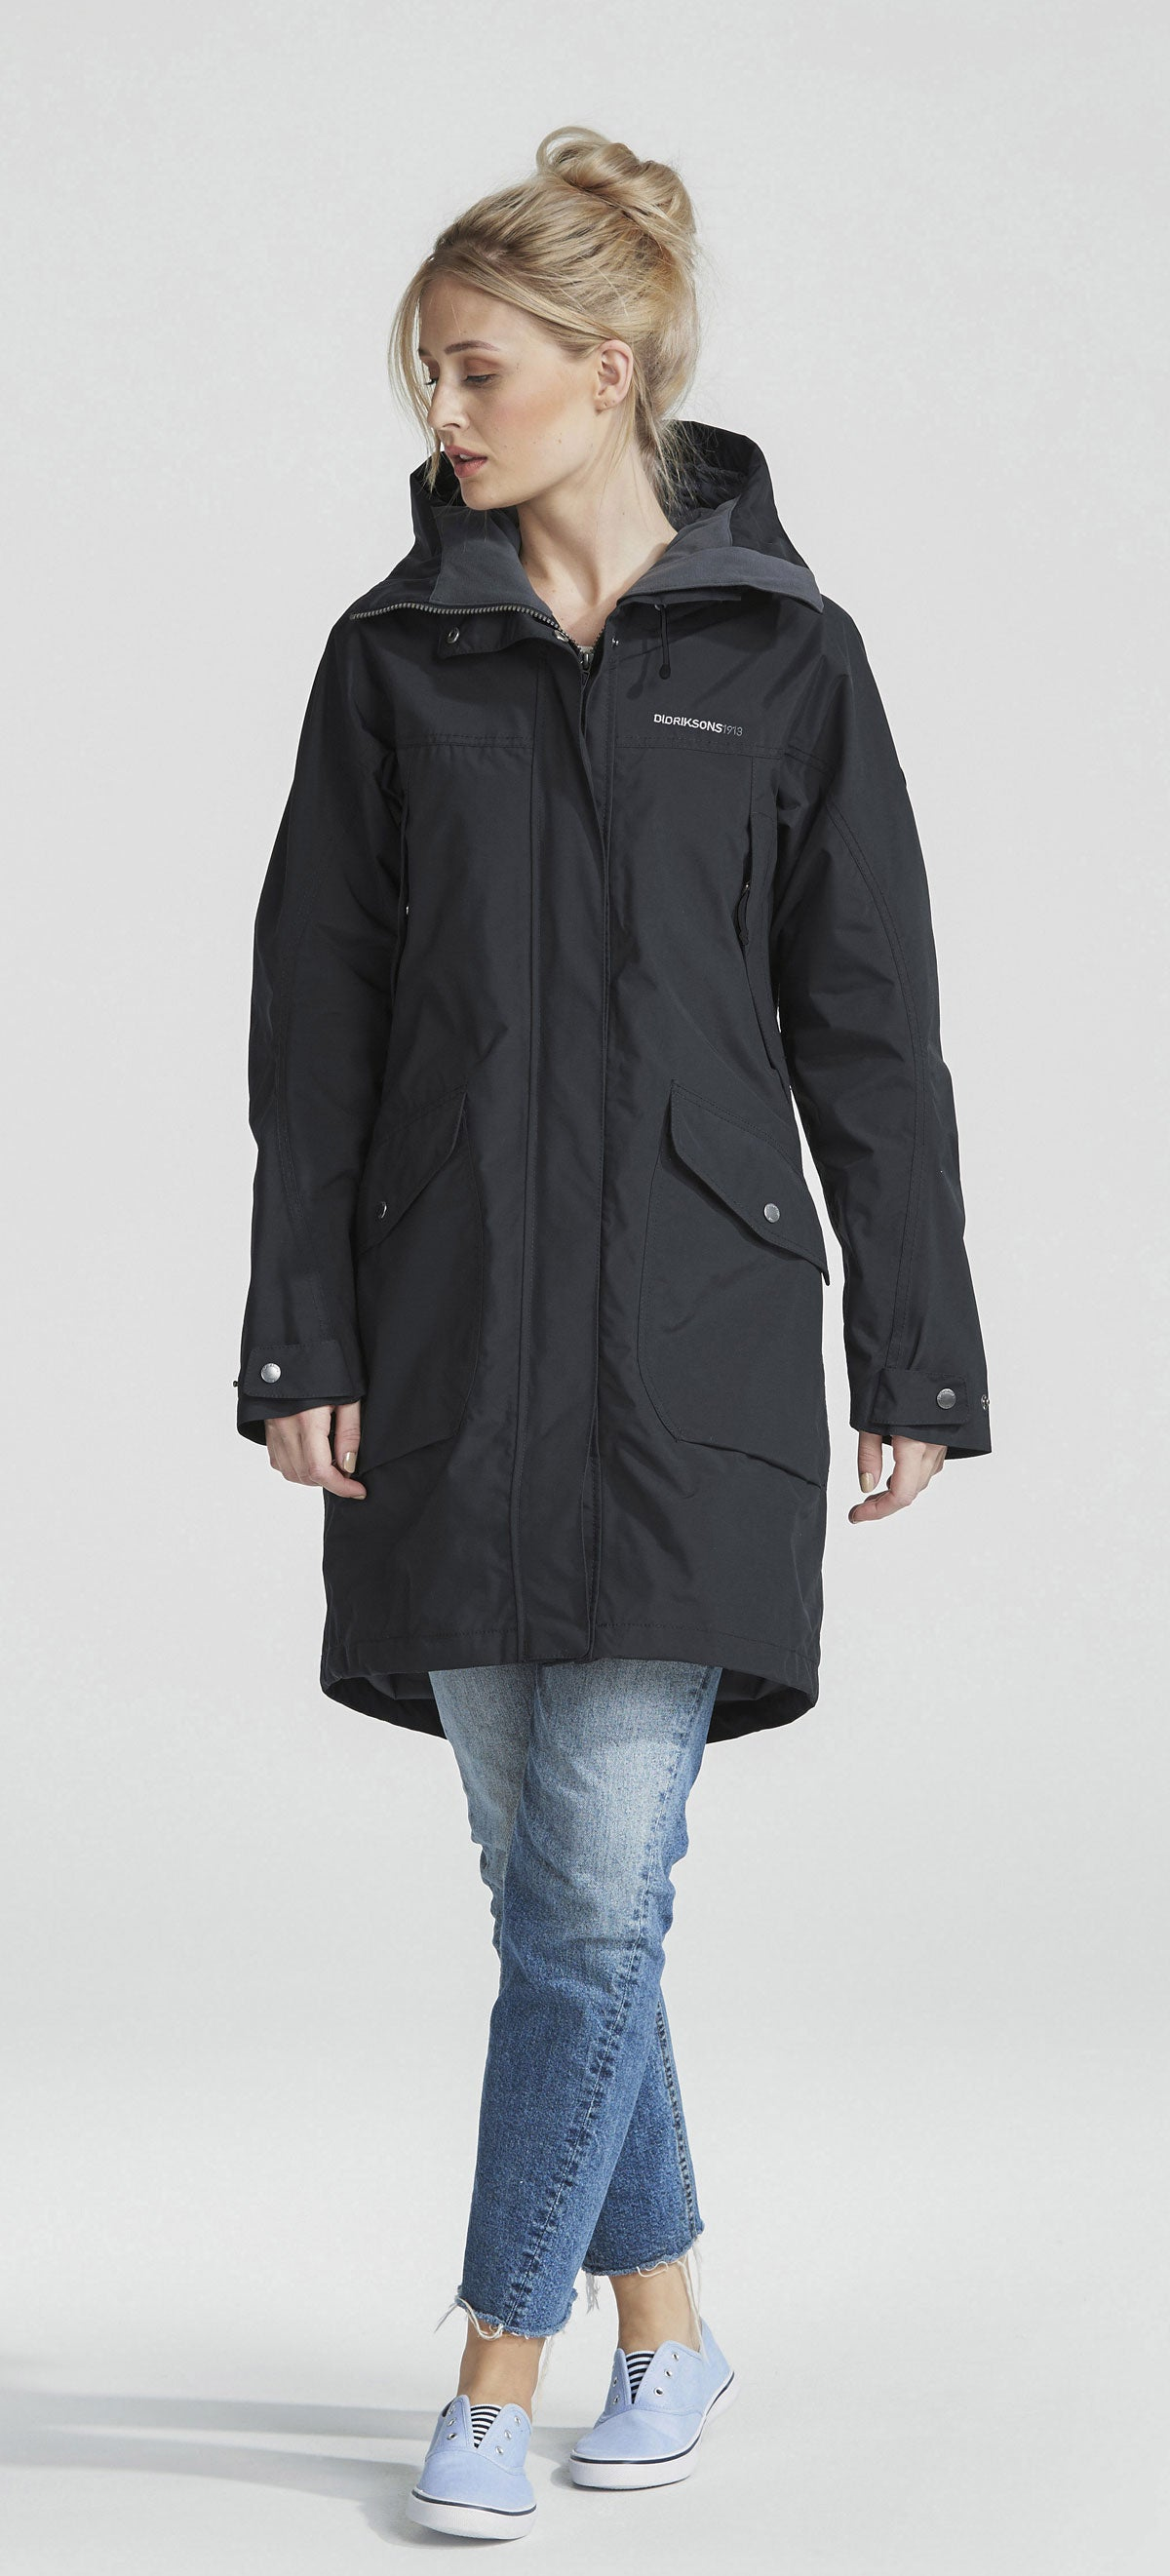 taking a trip in Didriksons Ladies Thelma Waterproof parka coat